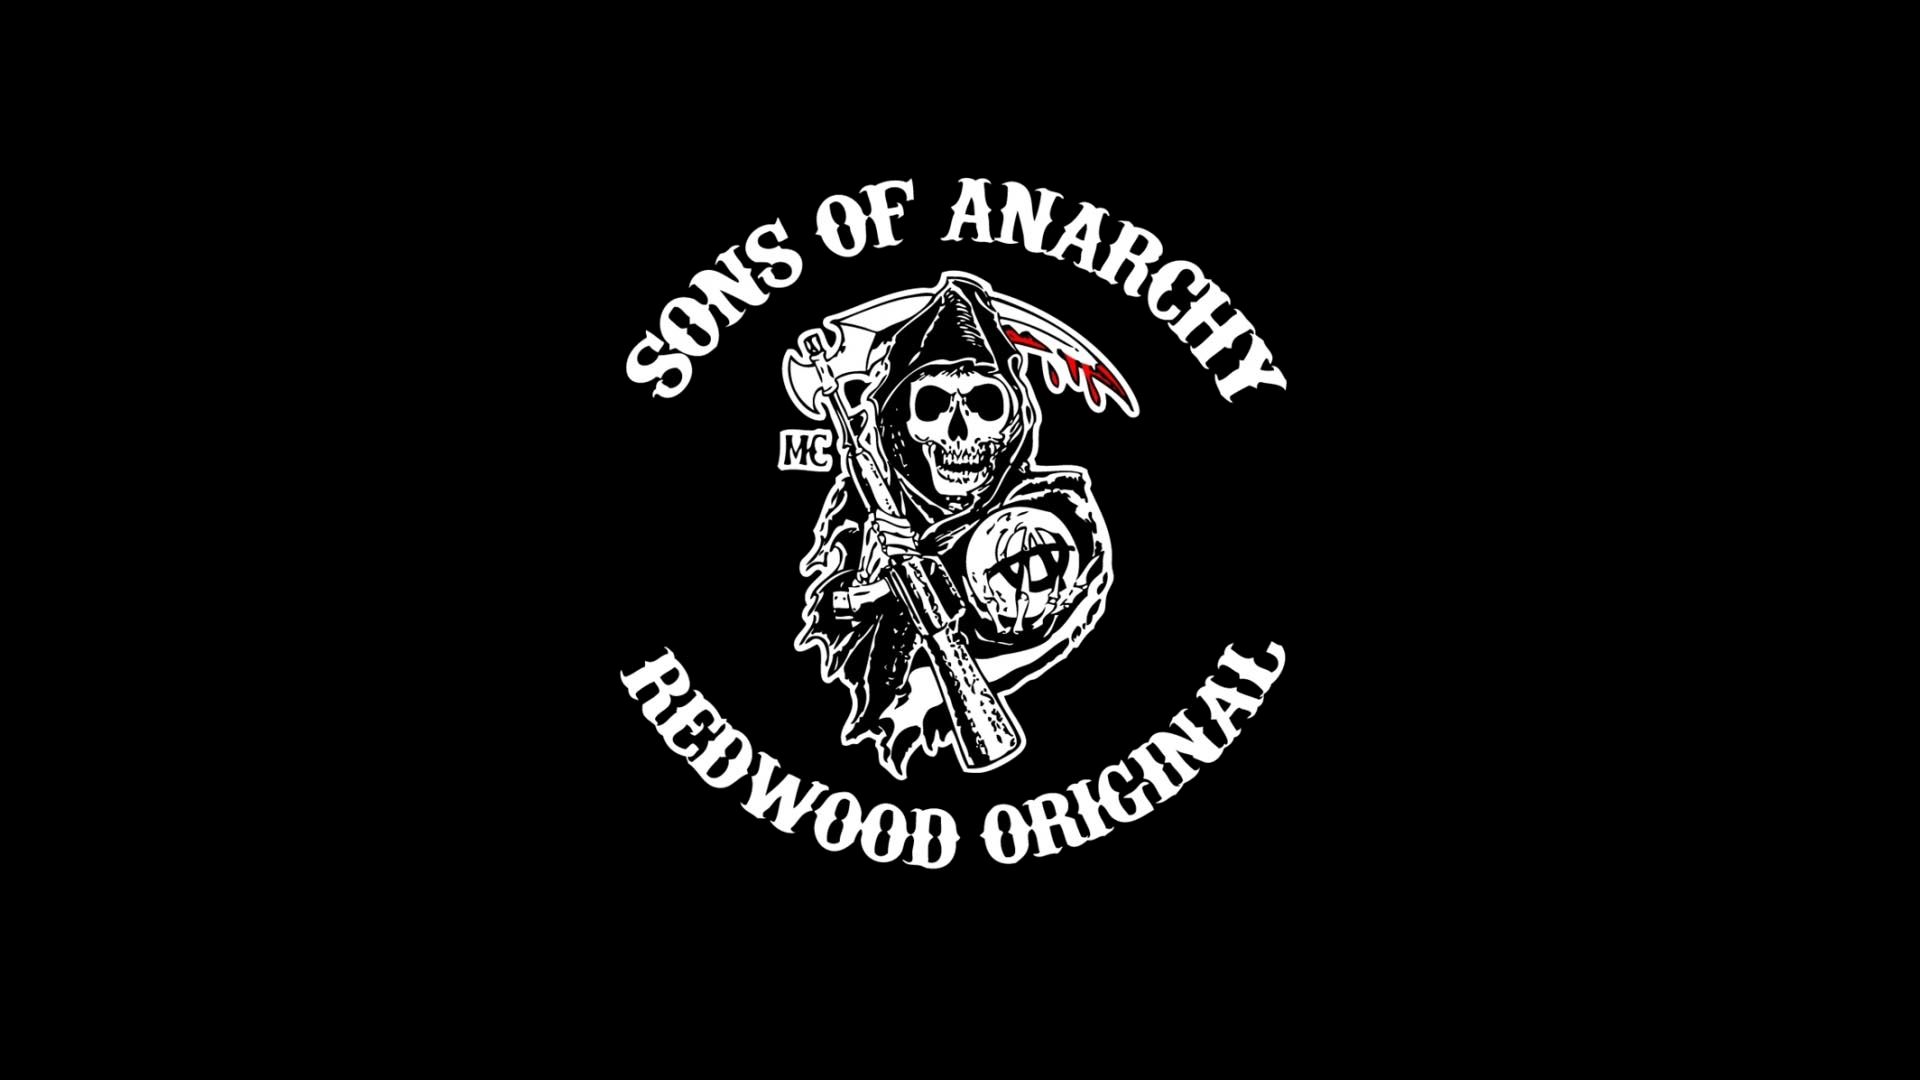 Sons Of Anarchy Background Wallpaper